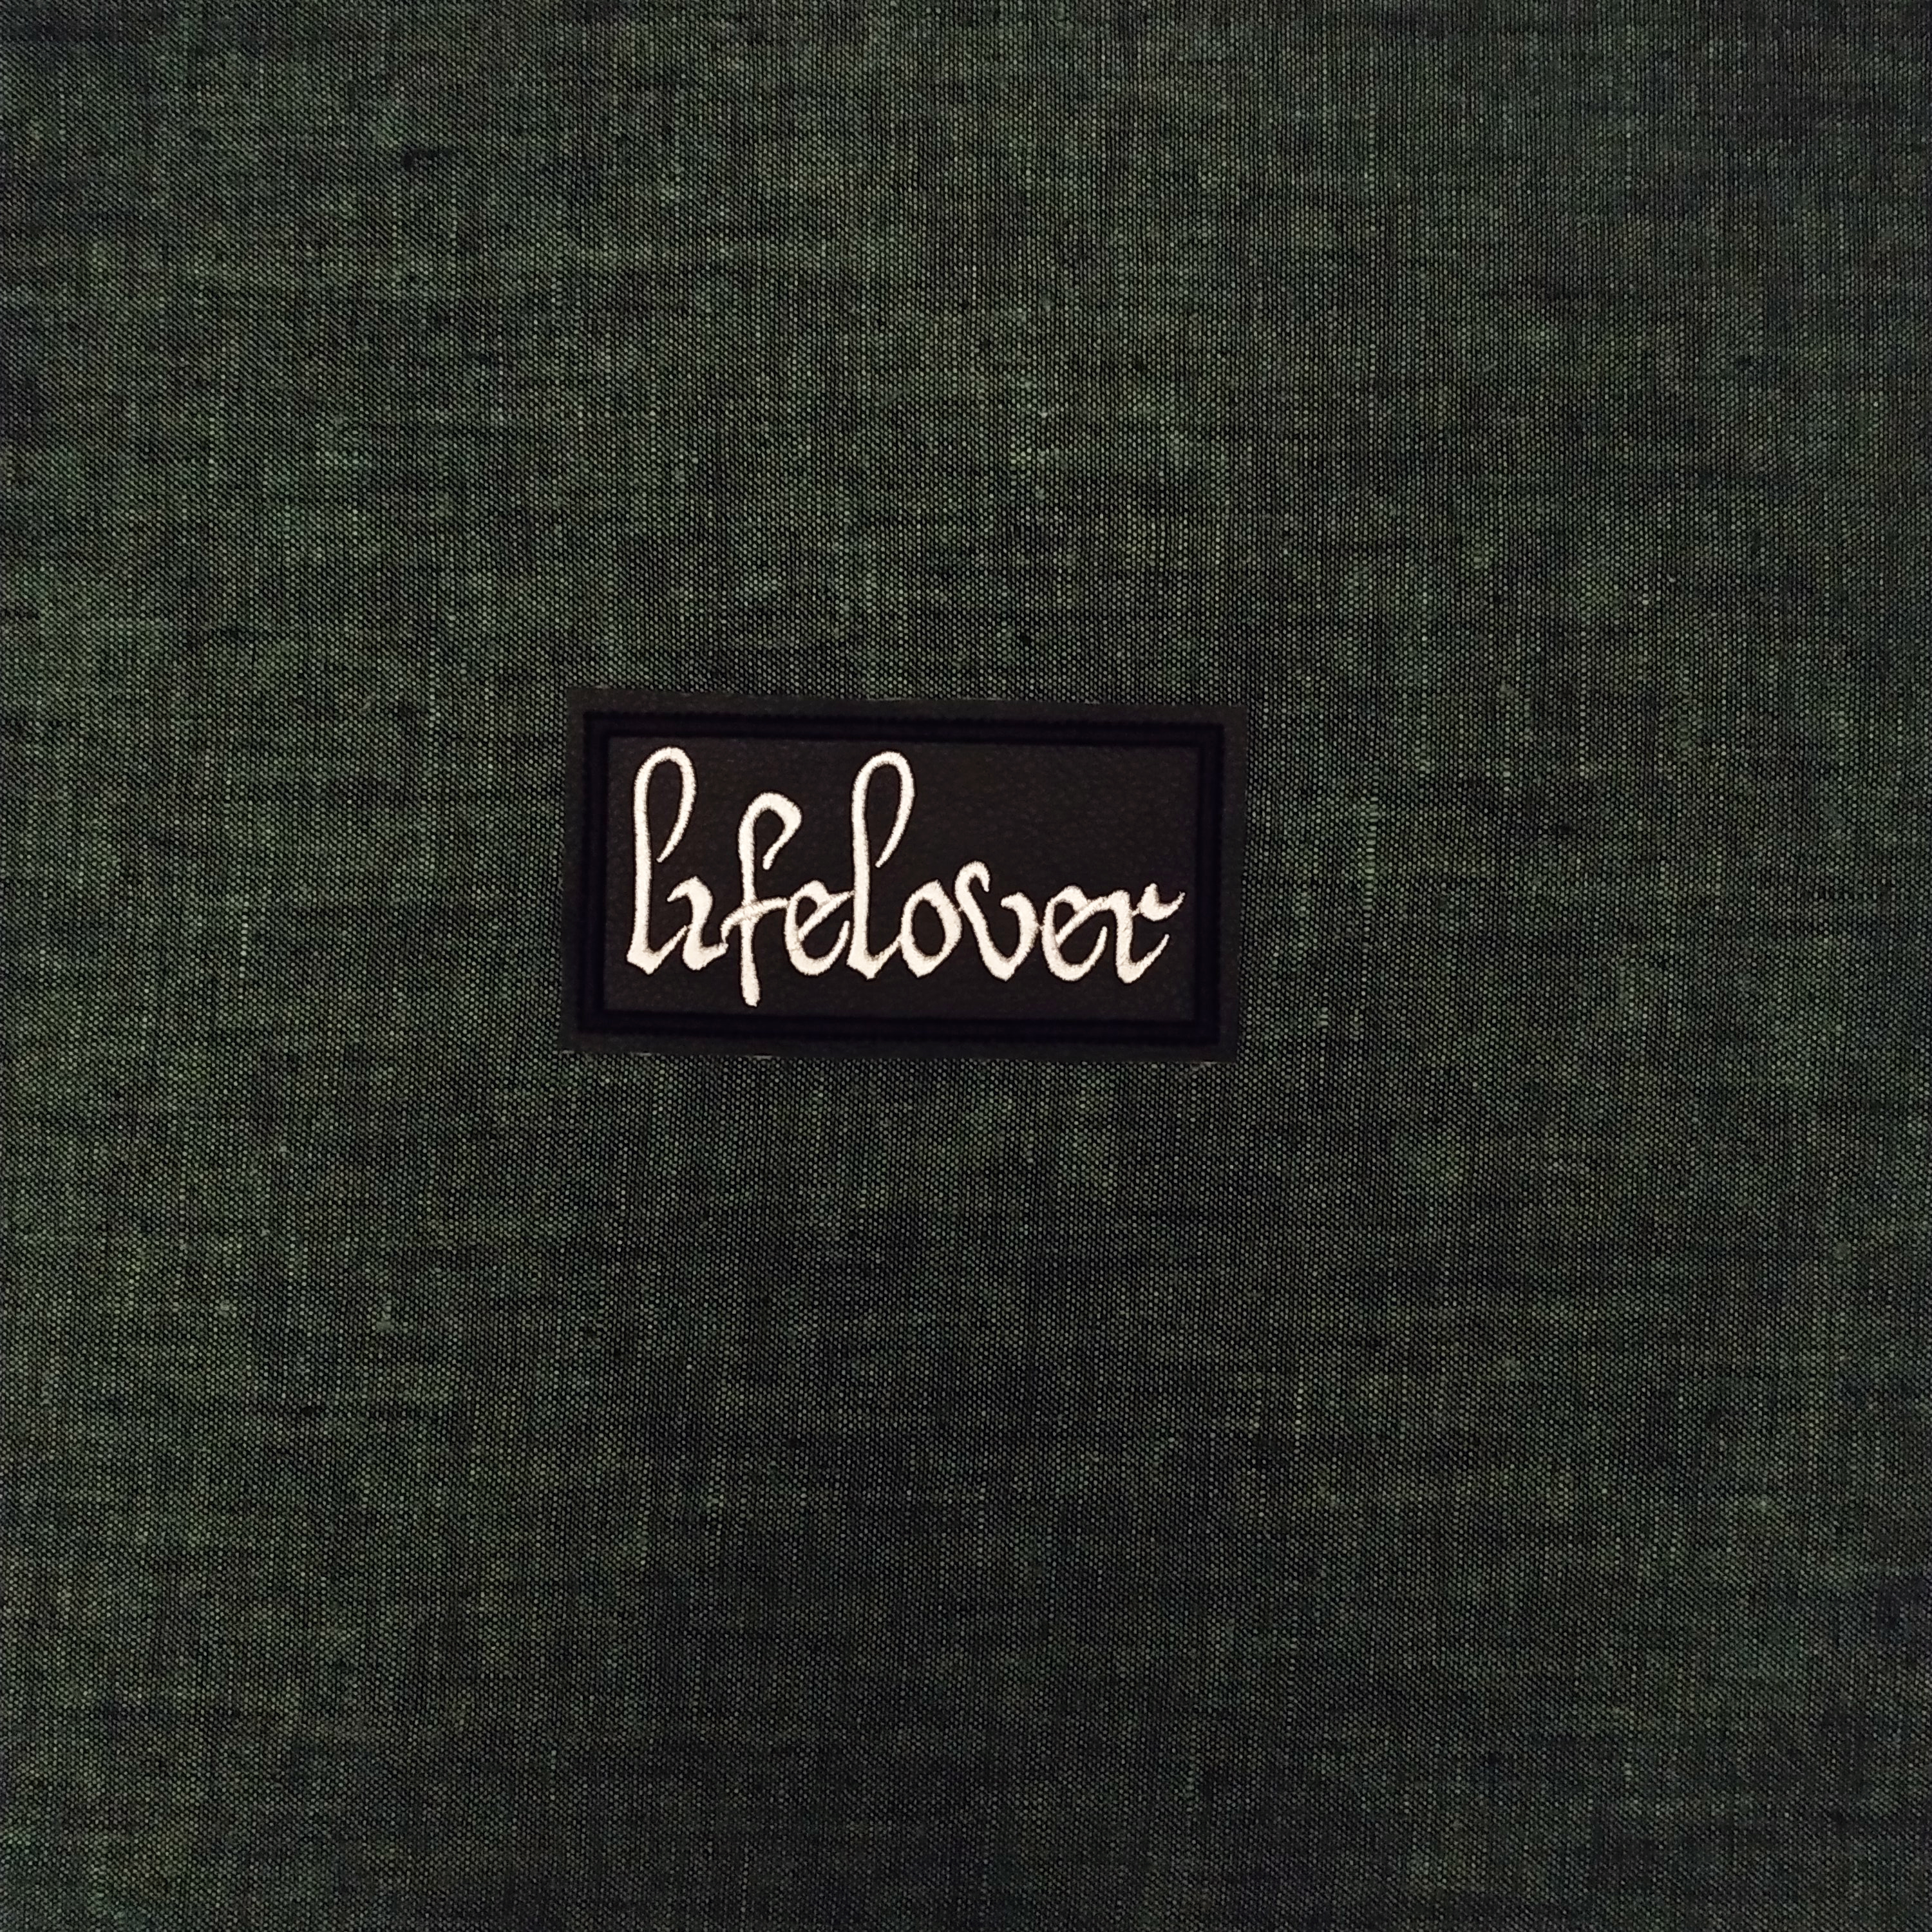 Patch Lifelover Black Metal band on artificial leather.